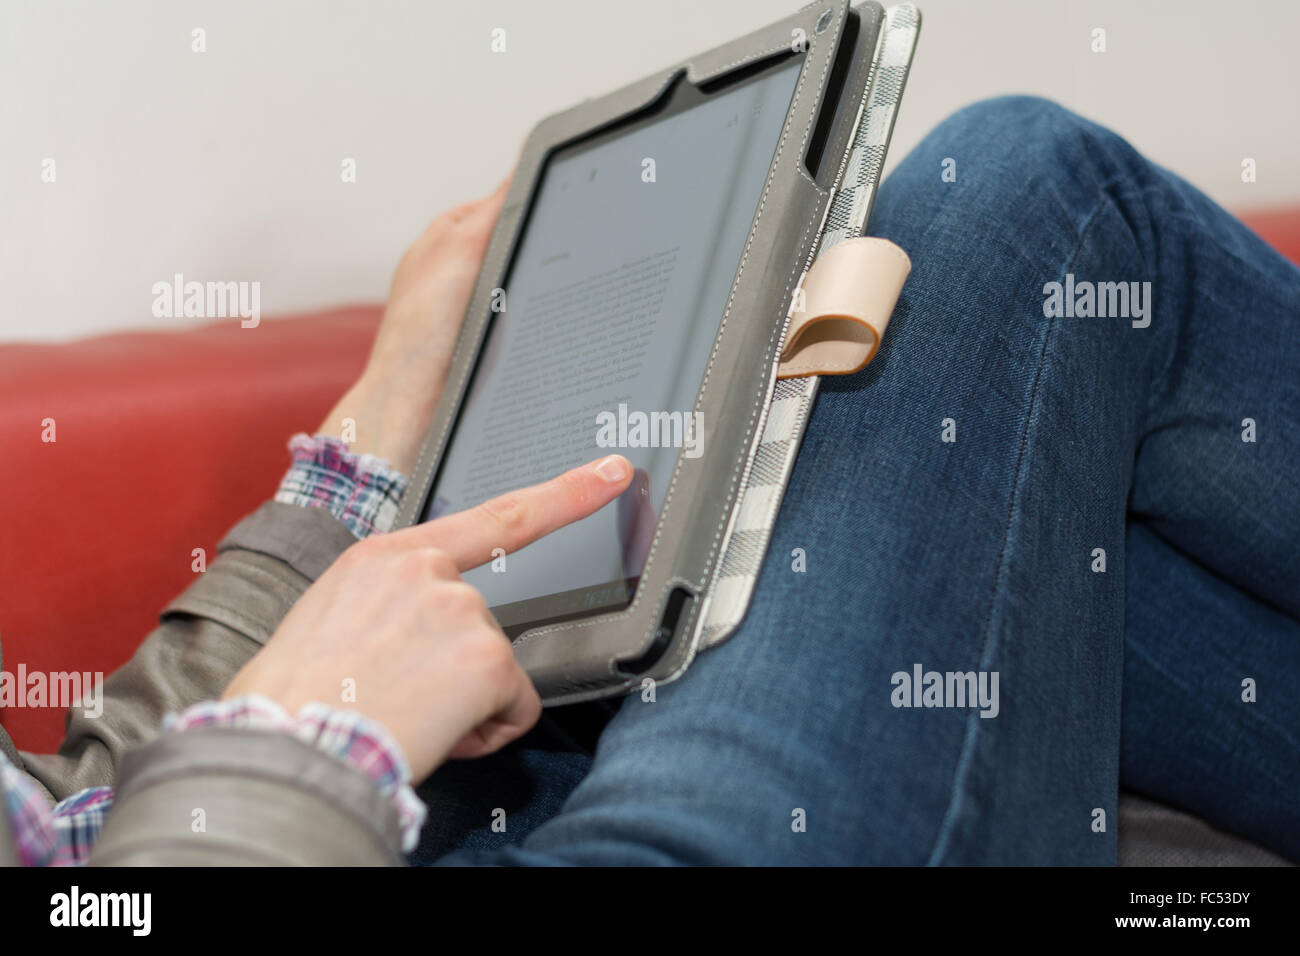 Tablet as an ebook in use - Stock Image